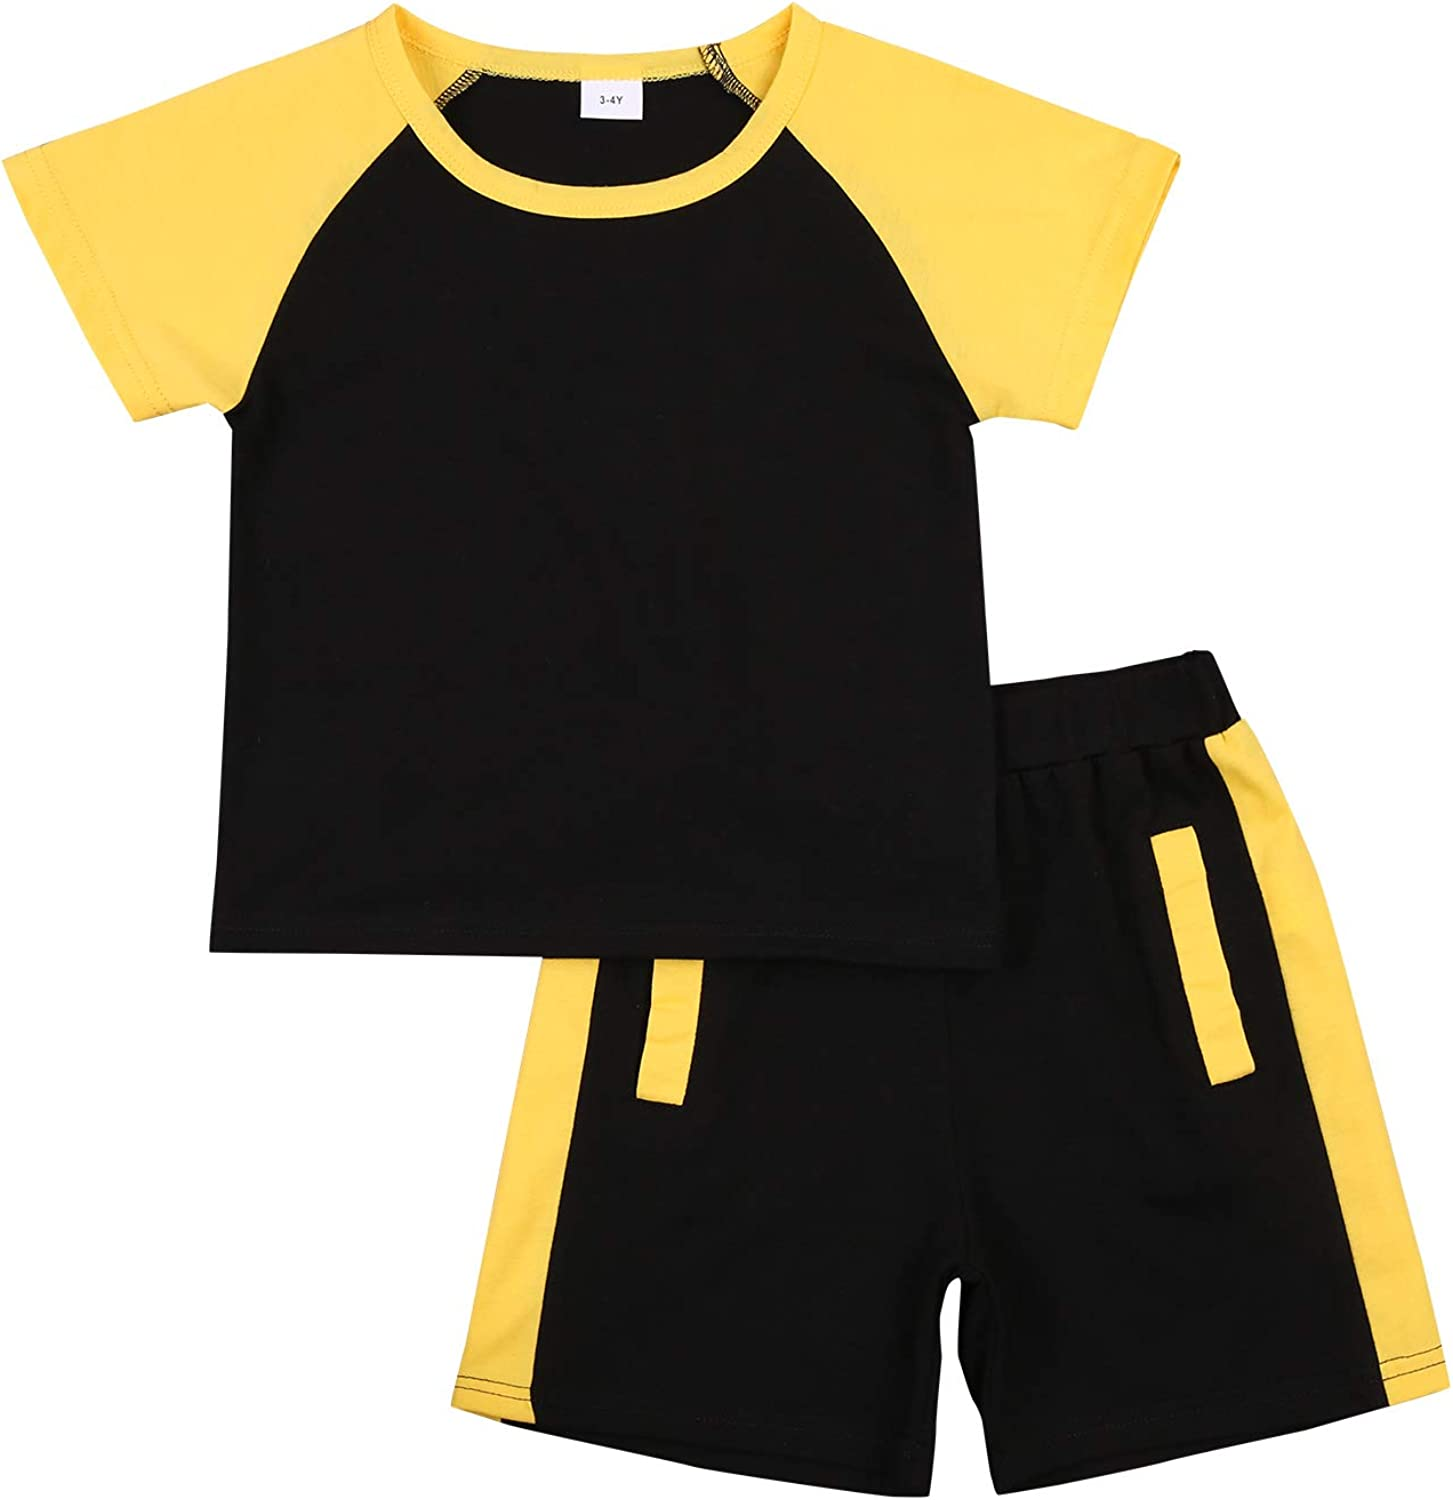 Toddler Baby Boy Daily bargain sale Summer Clothes Short Shorts Top T Shirt Sleeve OFFicial